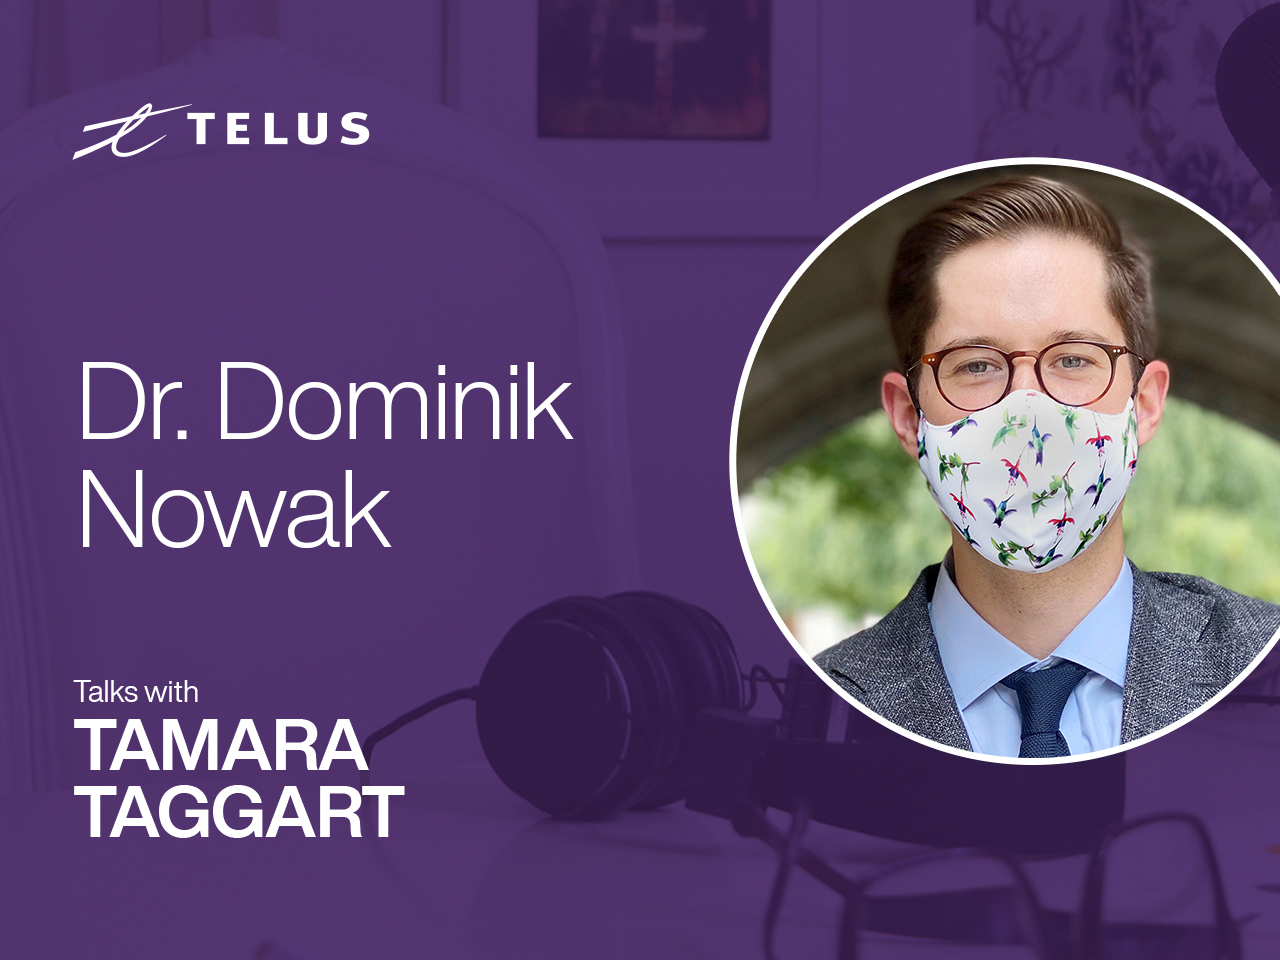 Dr. Dominik Nowak, national leader in primary care and health strategy for the TELUS Medical Advisory Council.